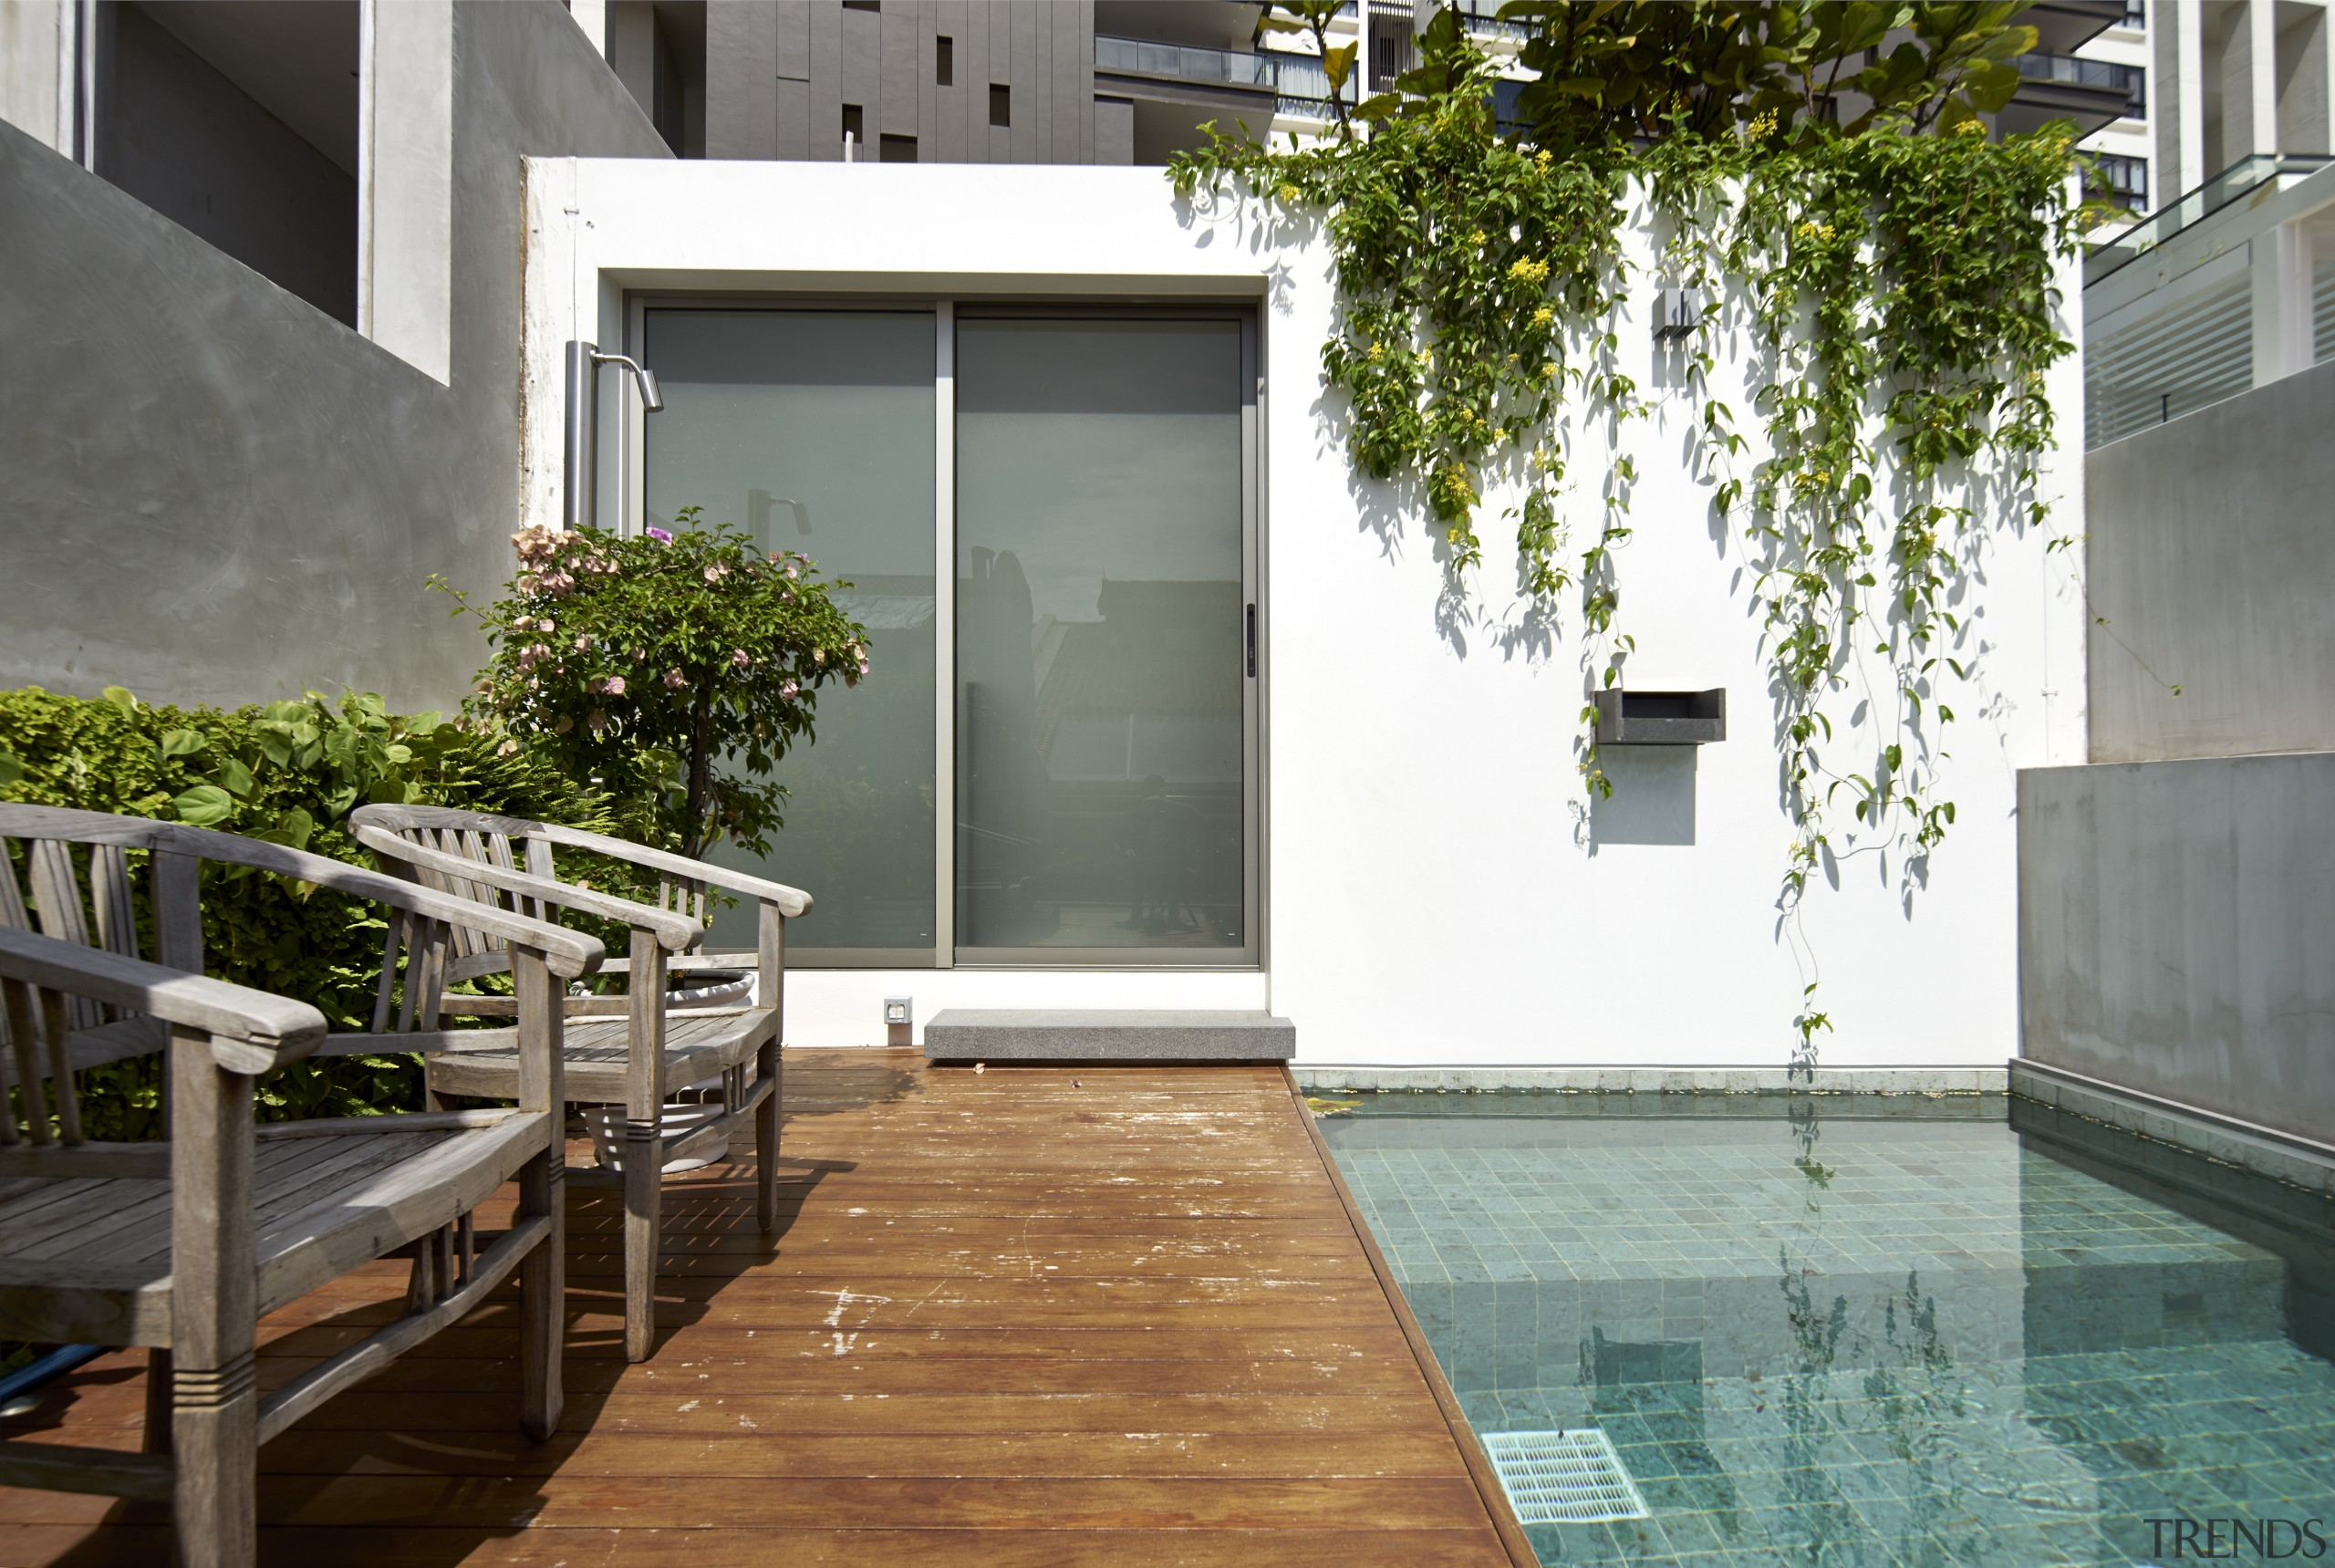 A rooftop deck and swimming pool are located apartment, architecture, backyard, condominium, courtyard, facade, home, house, interior design, property, real estate, residential area, swimming pool, water, window, gray